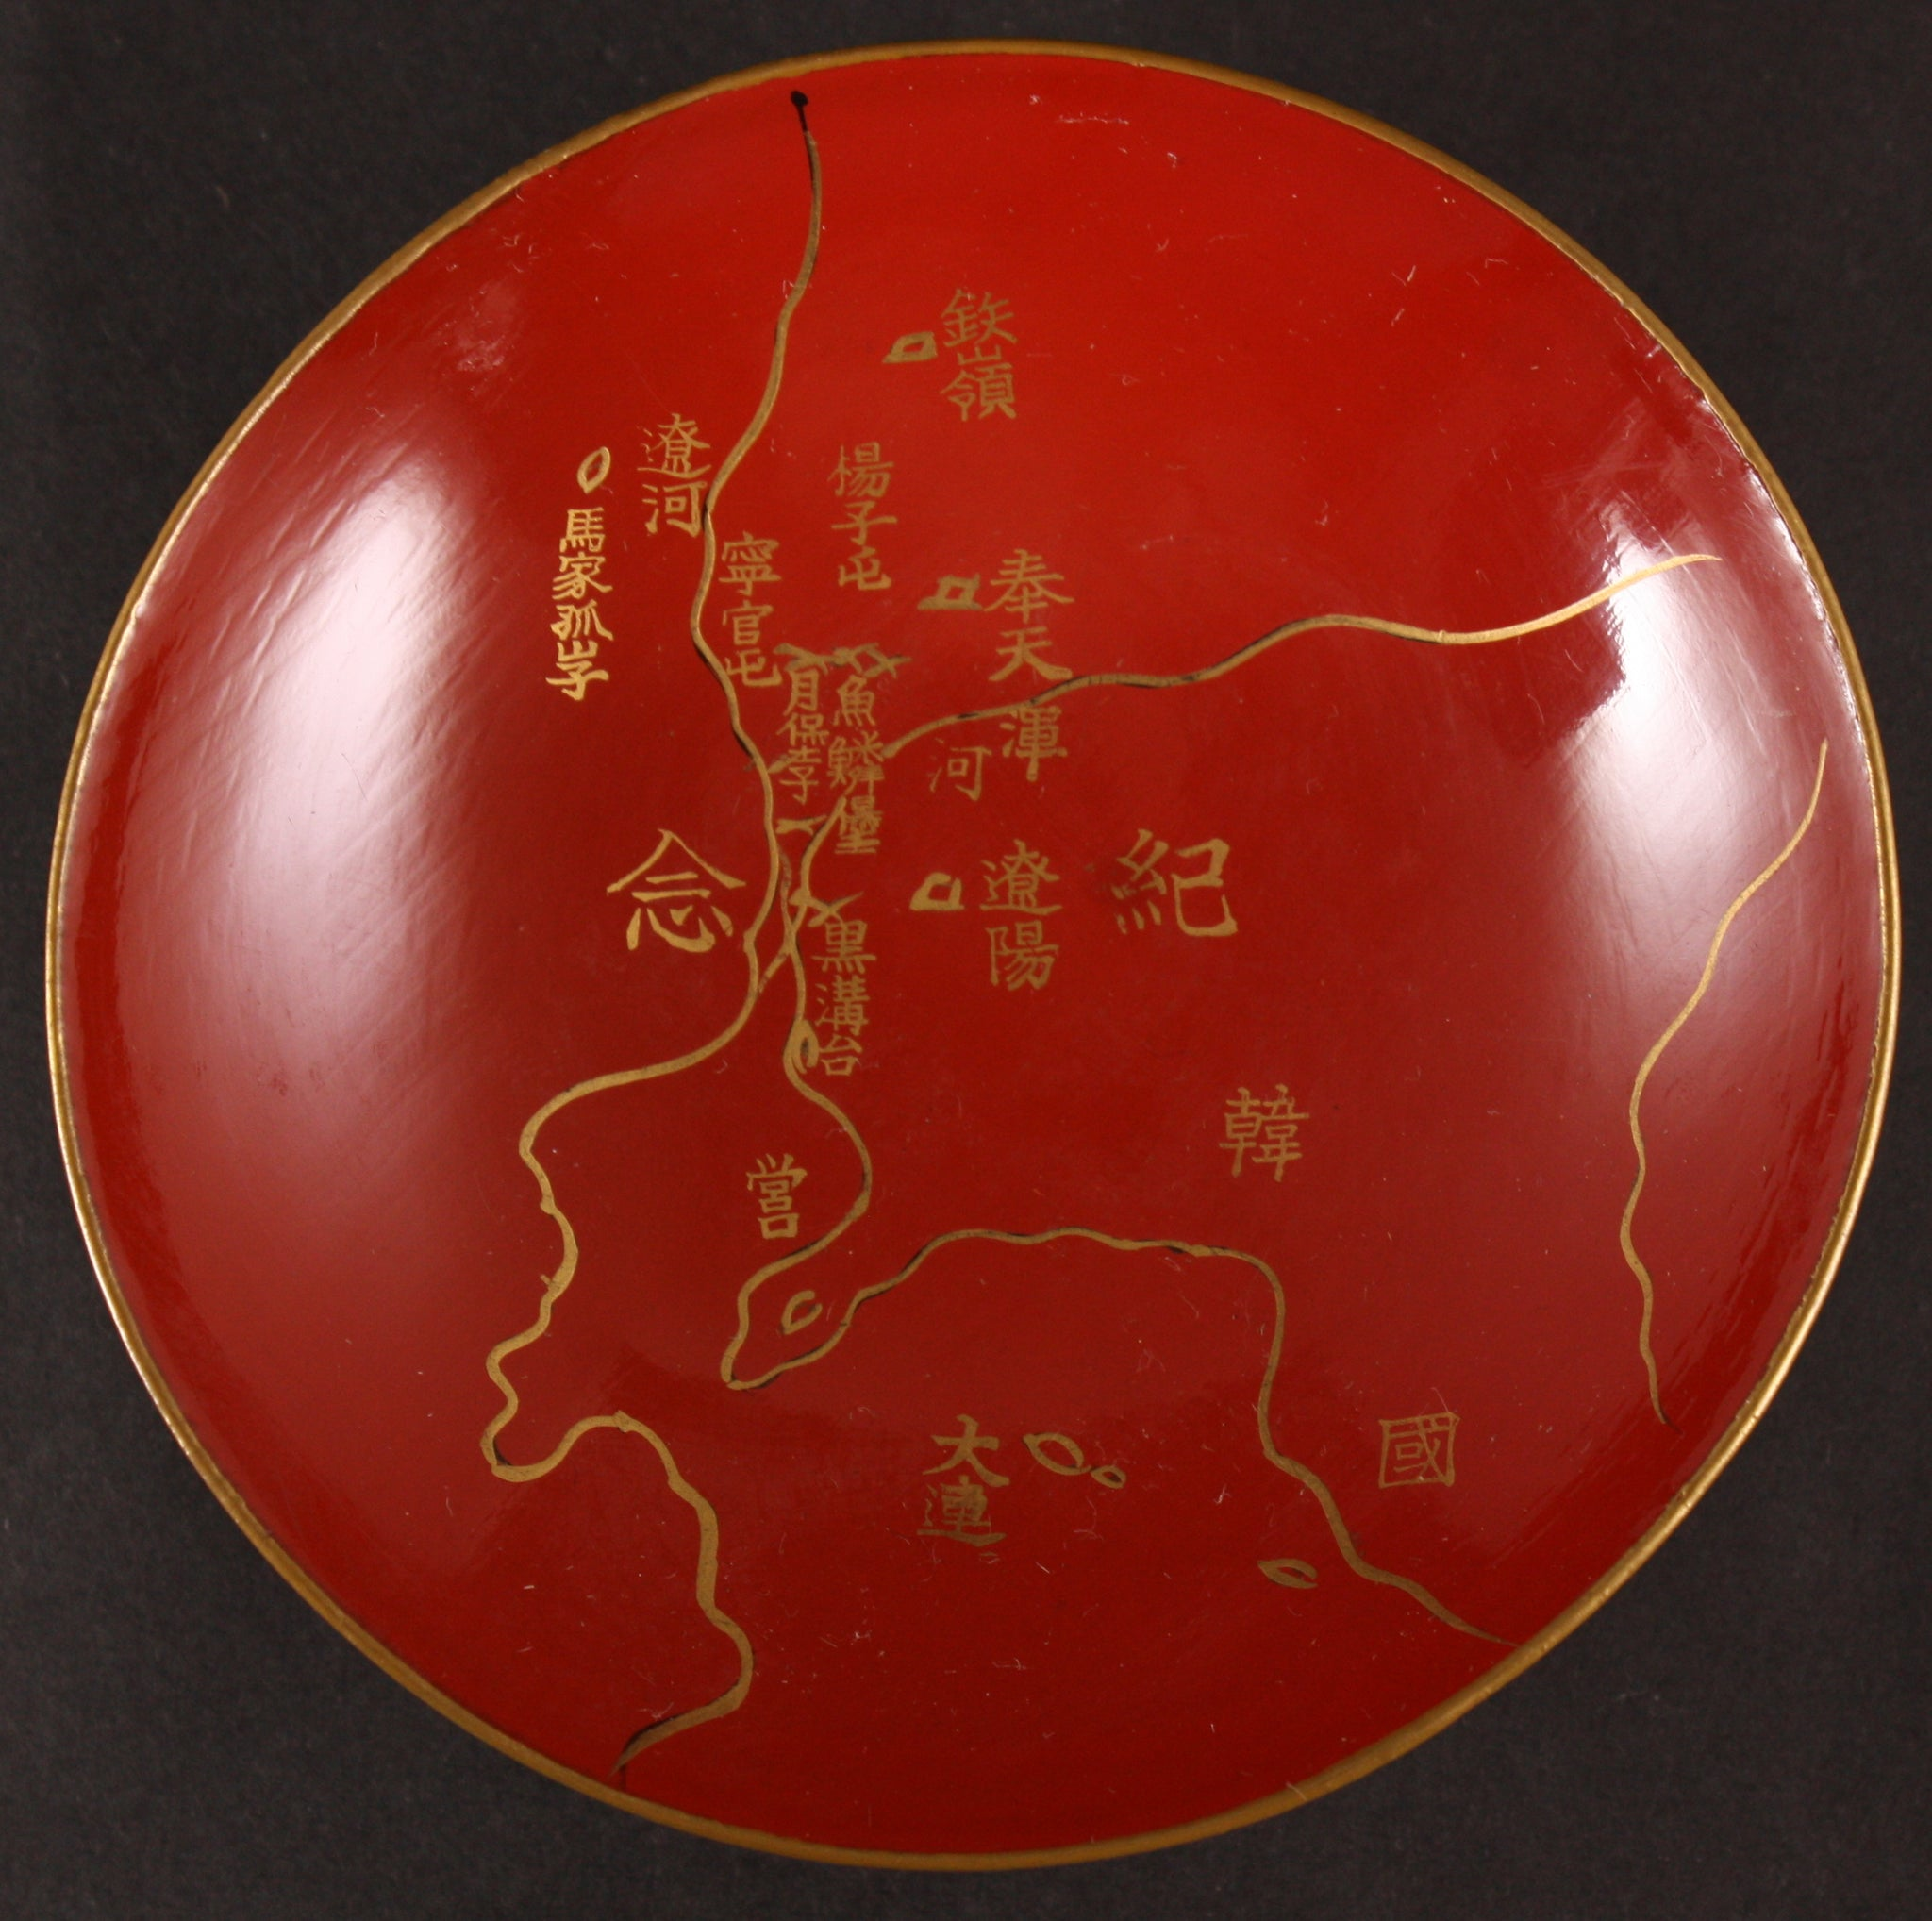 Very Rare Russo Japanese War Northeast China Map Lacquer Army Sake Cup